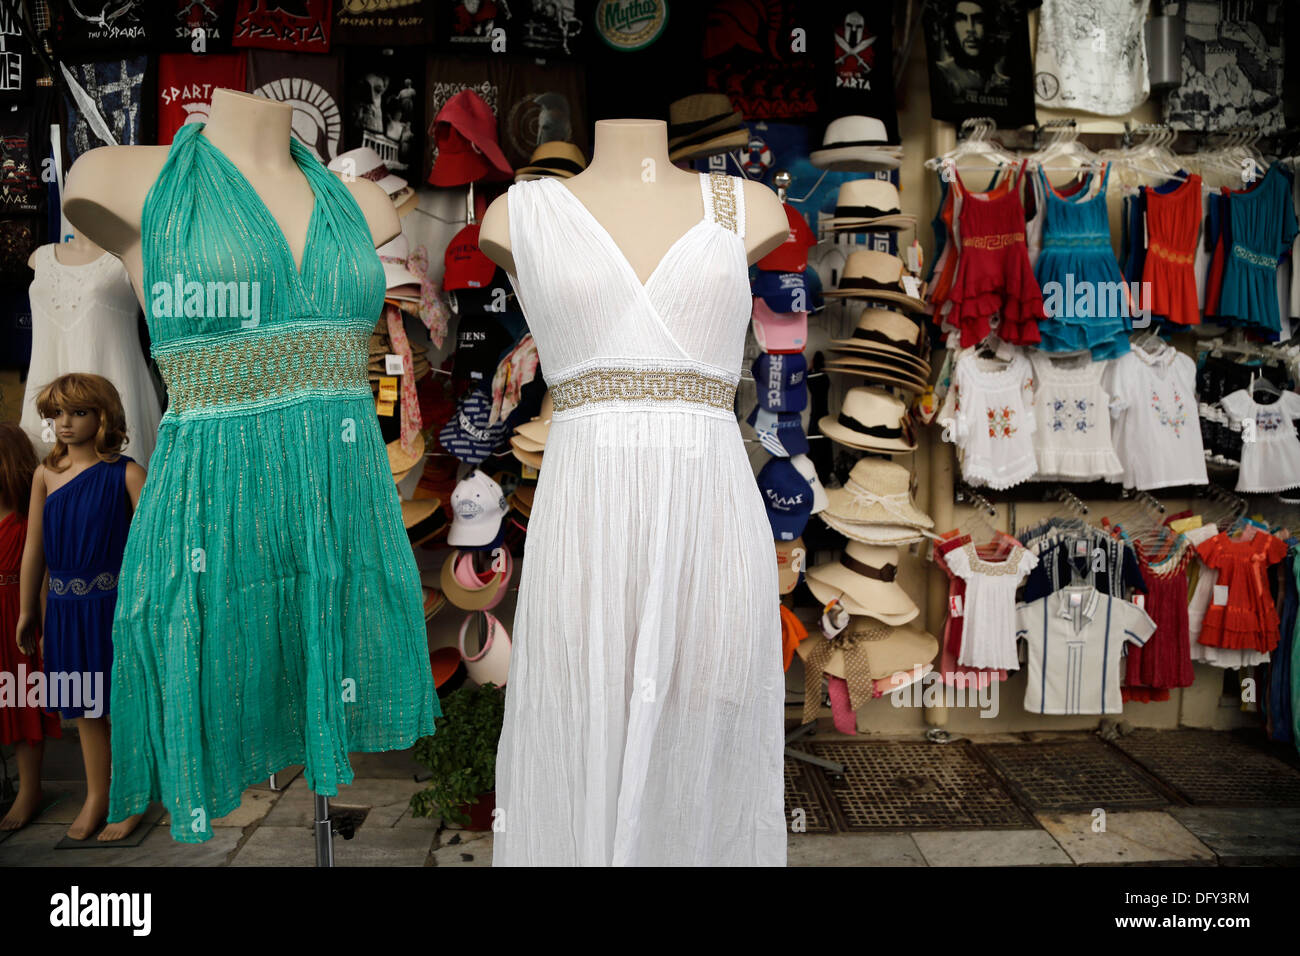 Ancient Greek Style Dresses At Souvenirs Shop In Plaka Athens Stock Photo 61446664 Alamy